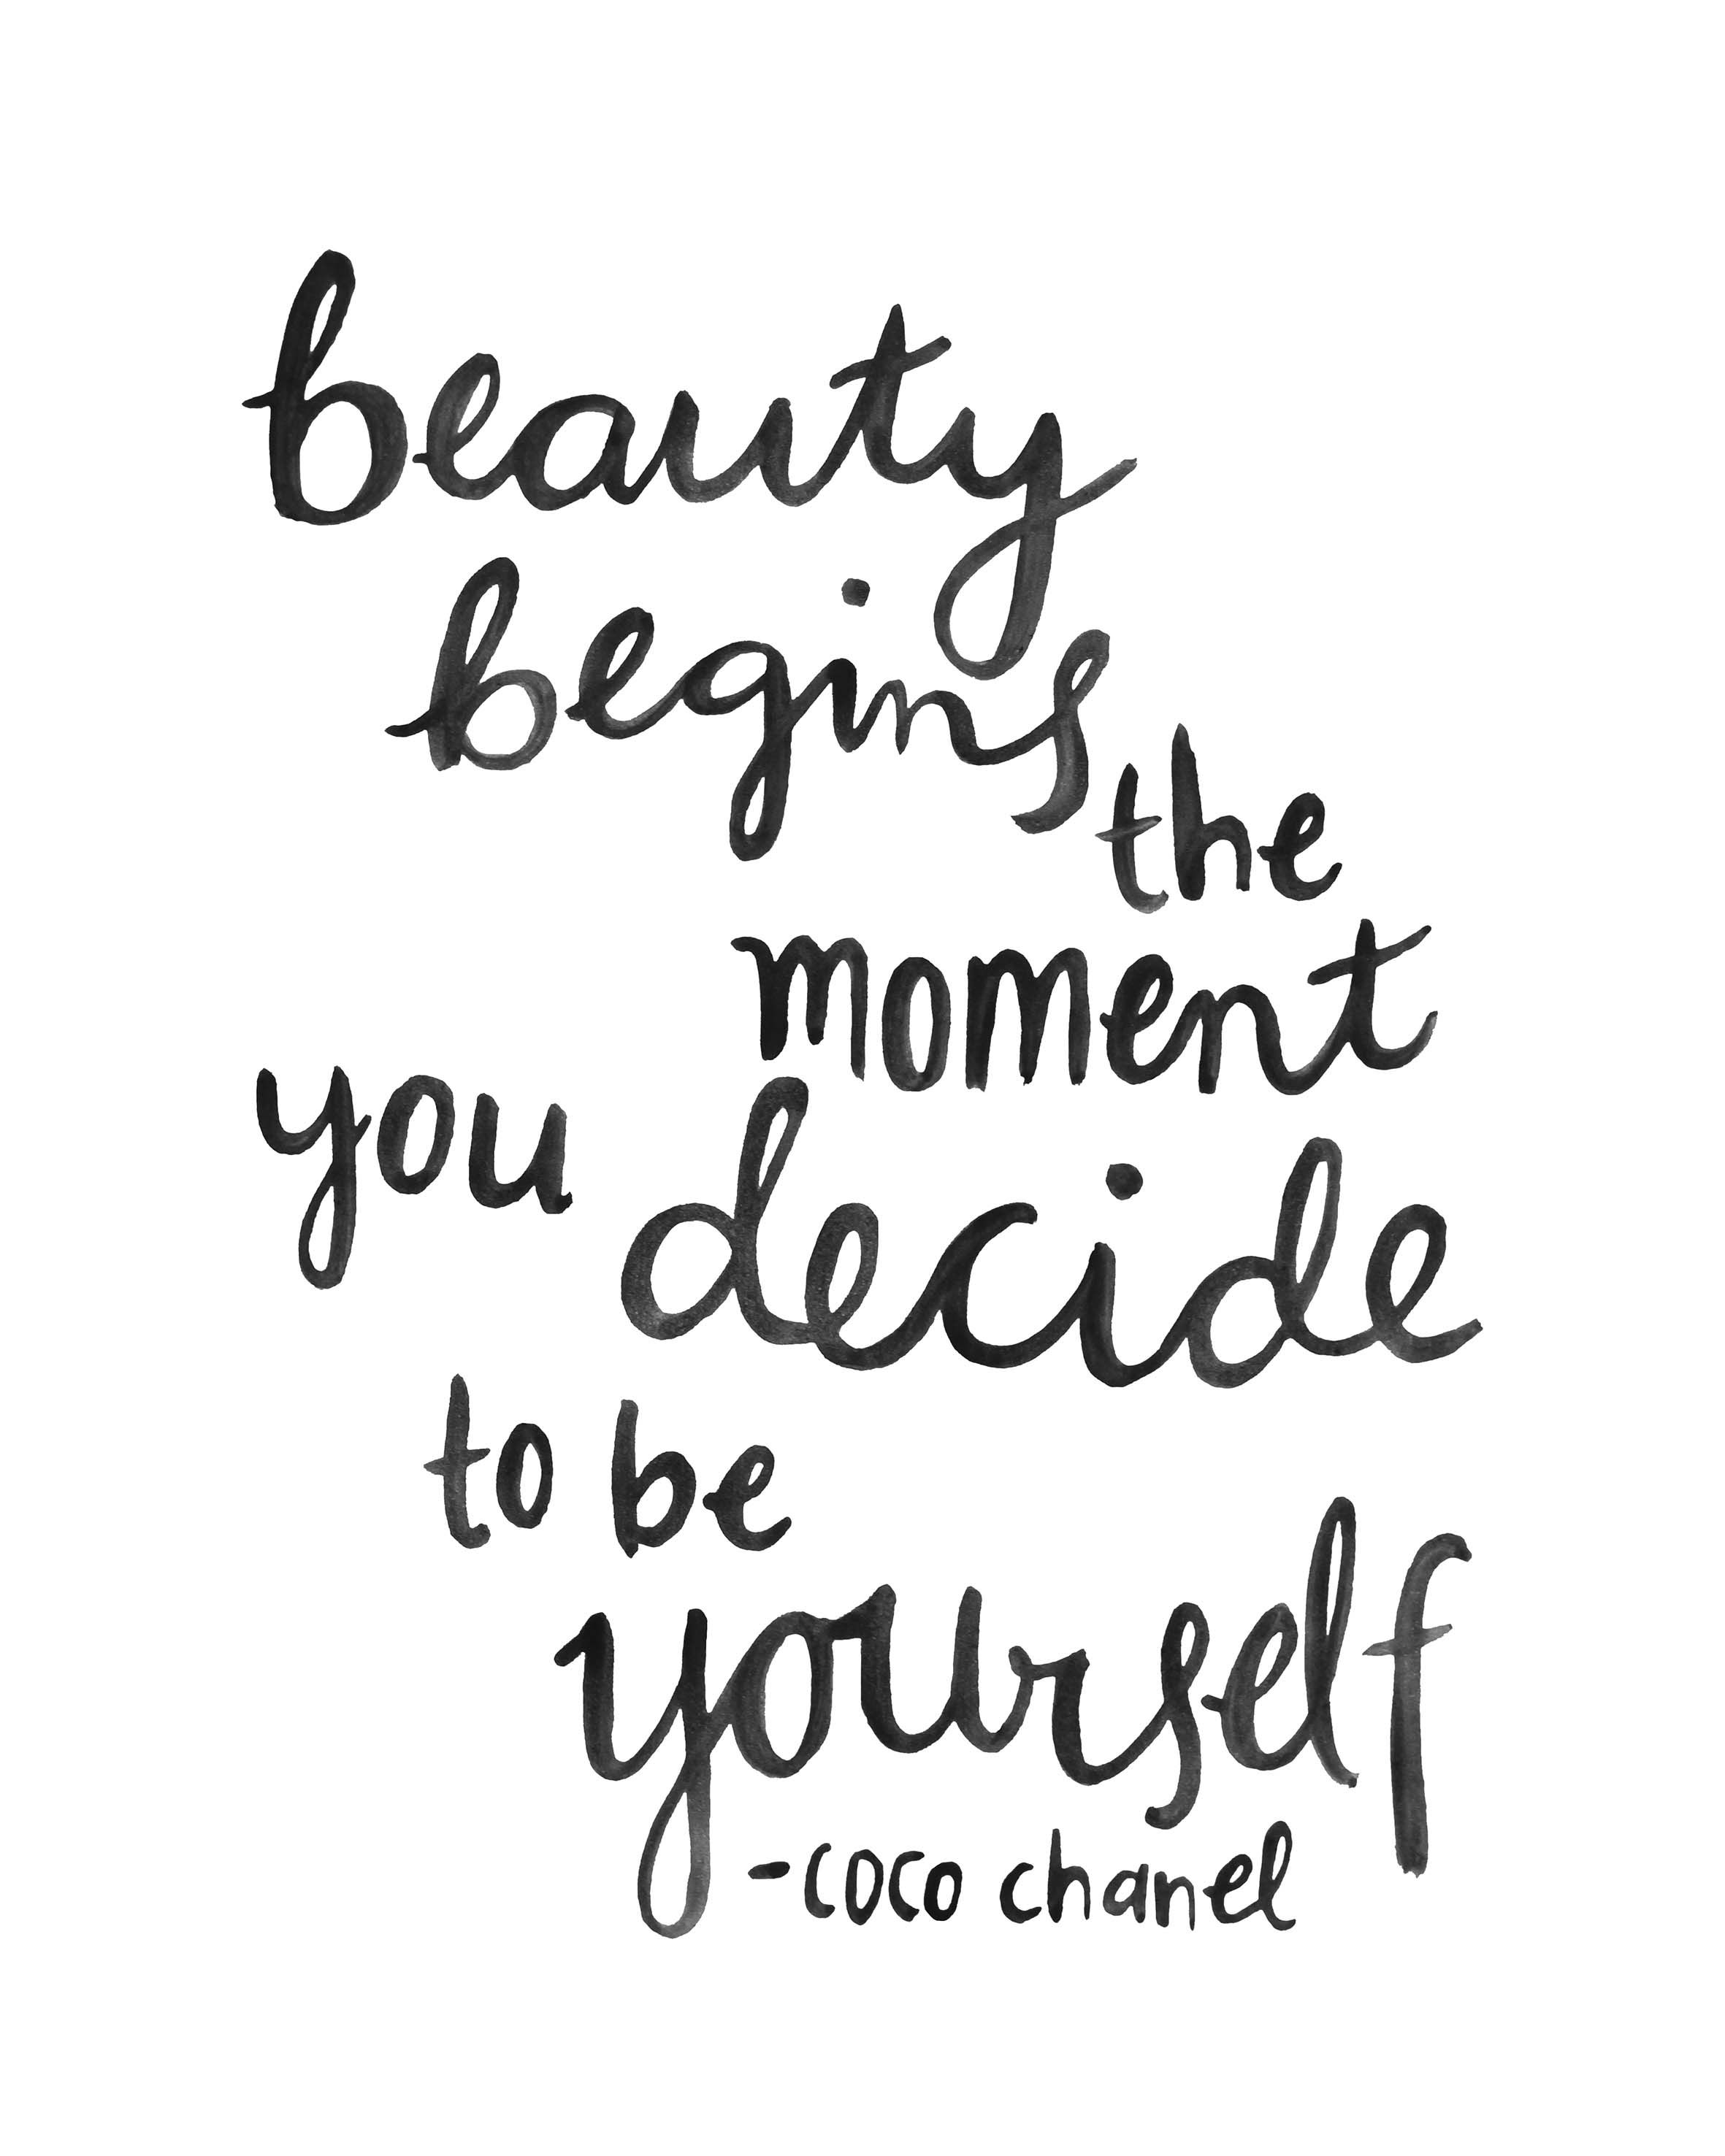 Coco Chanel Quotes Hand Lettering Coco Chanel Quotes Tumblr Gallery Amazing And Inspirational